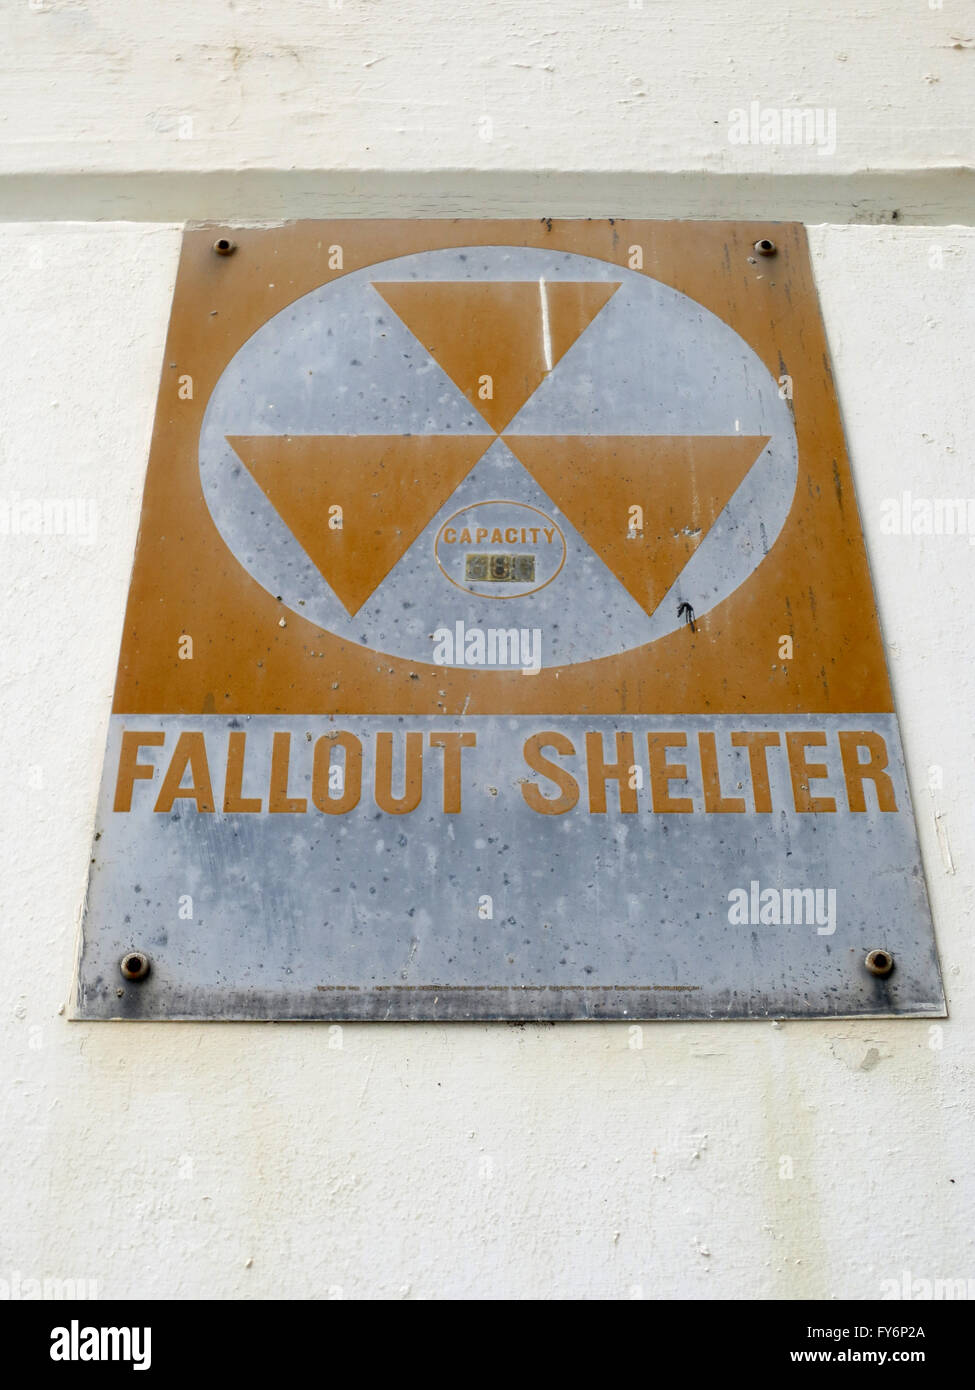 Old Fallout Shelter Sign from the cold war era slowly rusts as it hangs on wall. Stock Photo